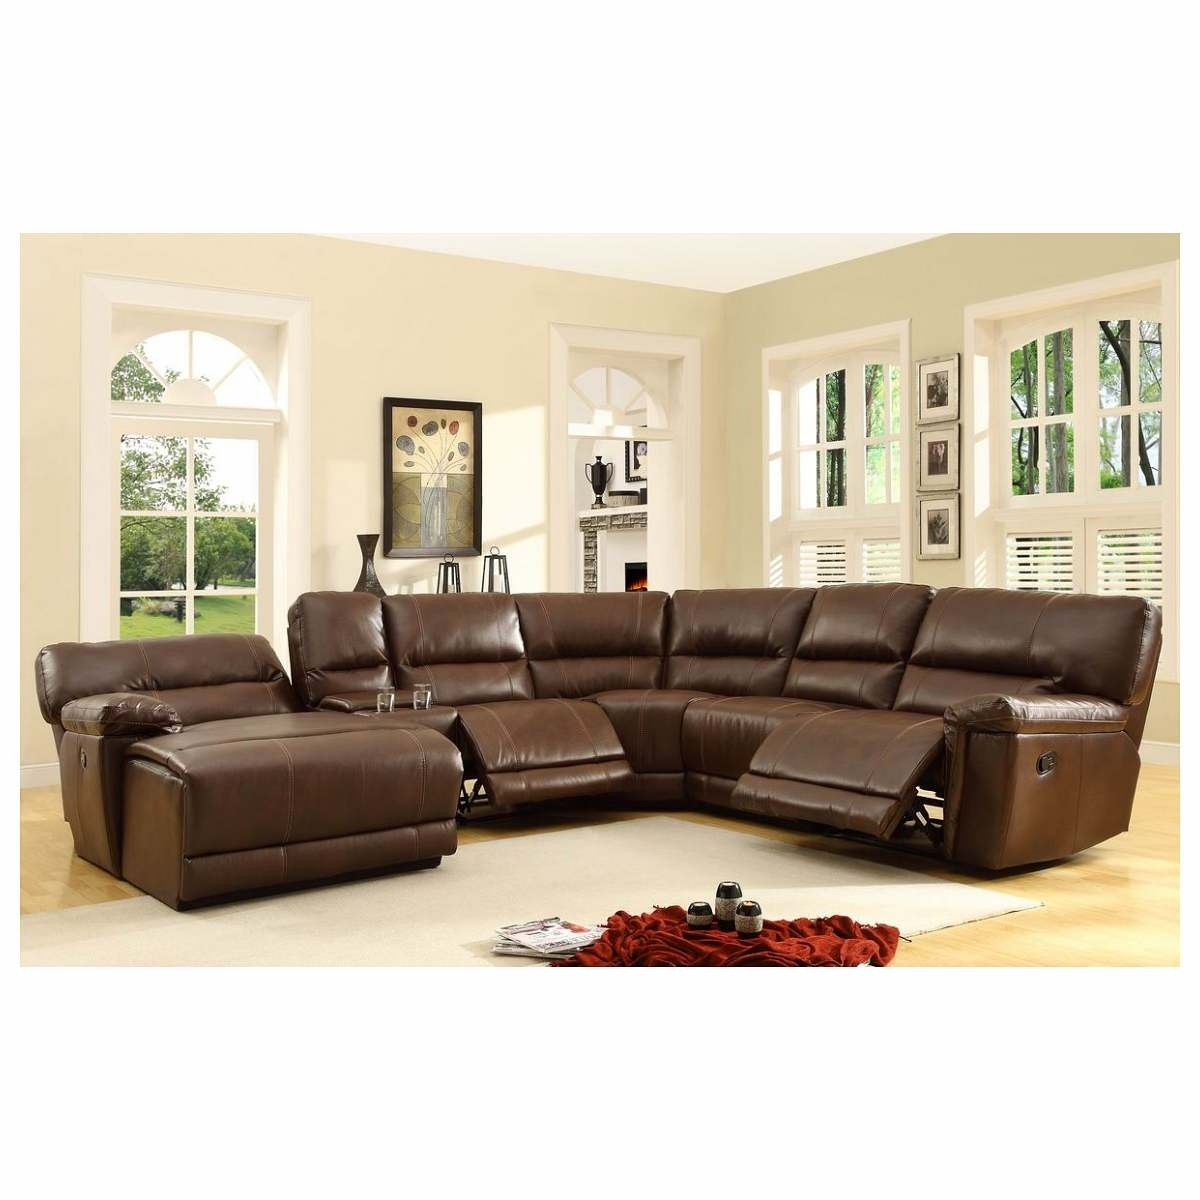 6 Pc Blythe Collection Brown Bonded Leather Match Upholstered for Well known Sectional Sofas At Bad Boy